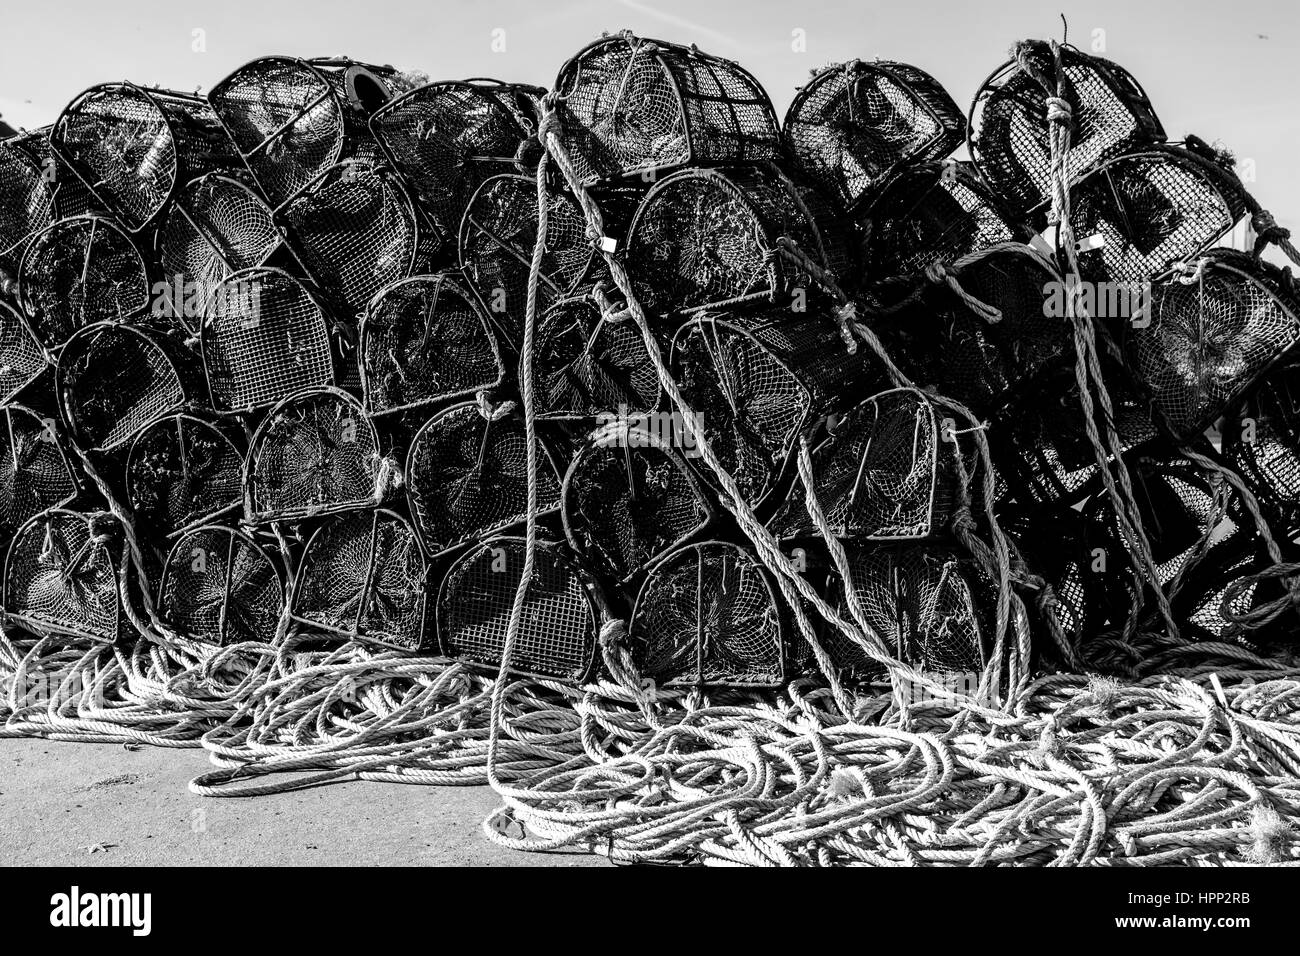 View of Pile of Fishing traps, Crab Pots in Docklands - Stock Image